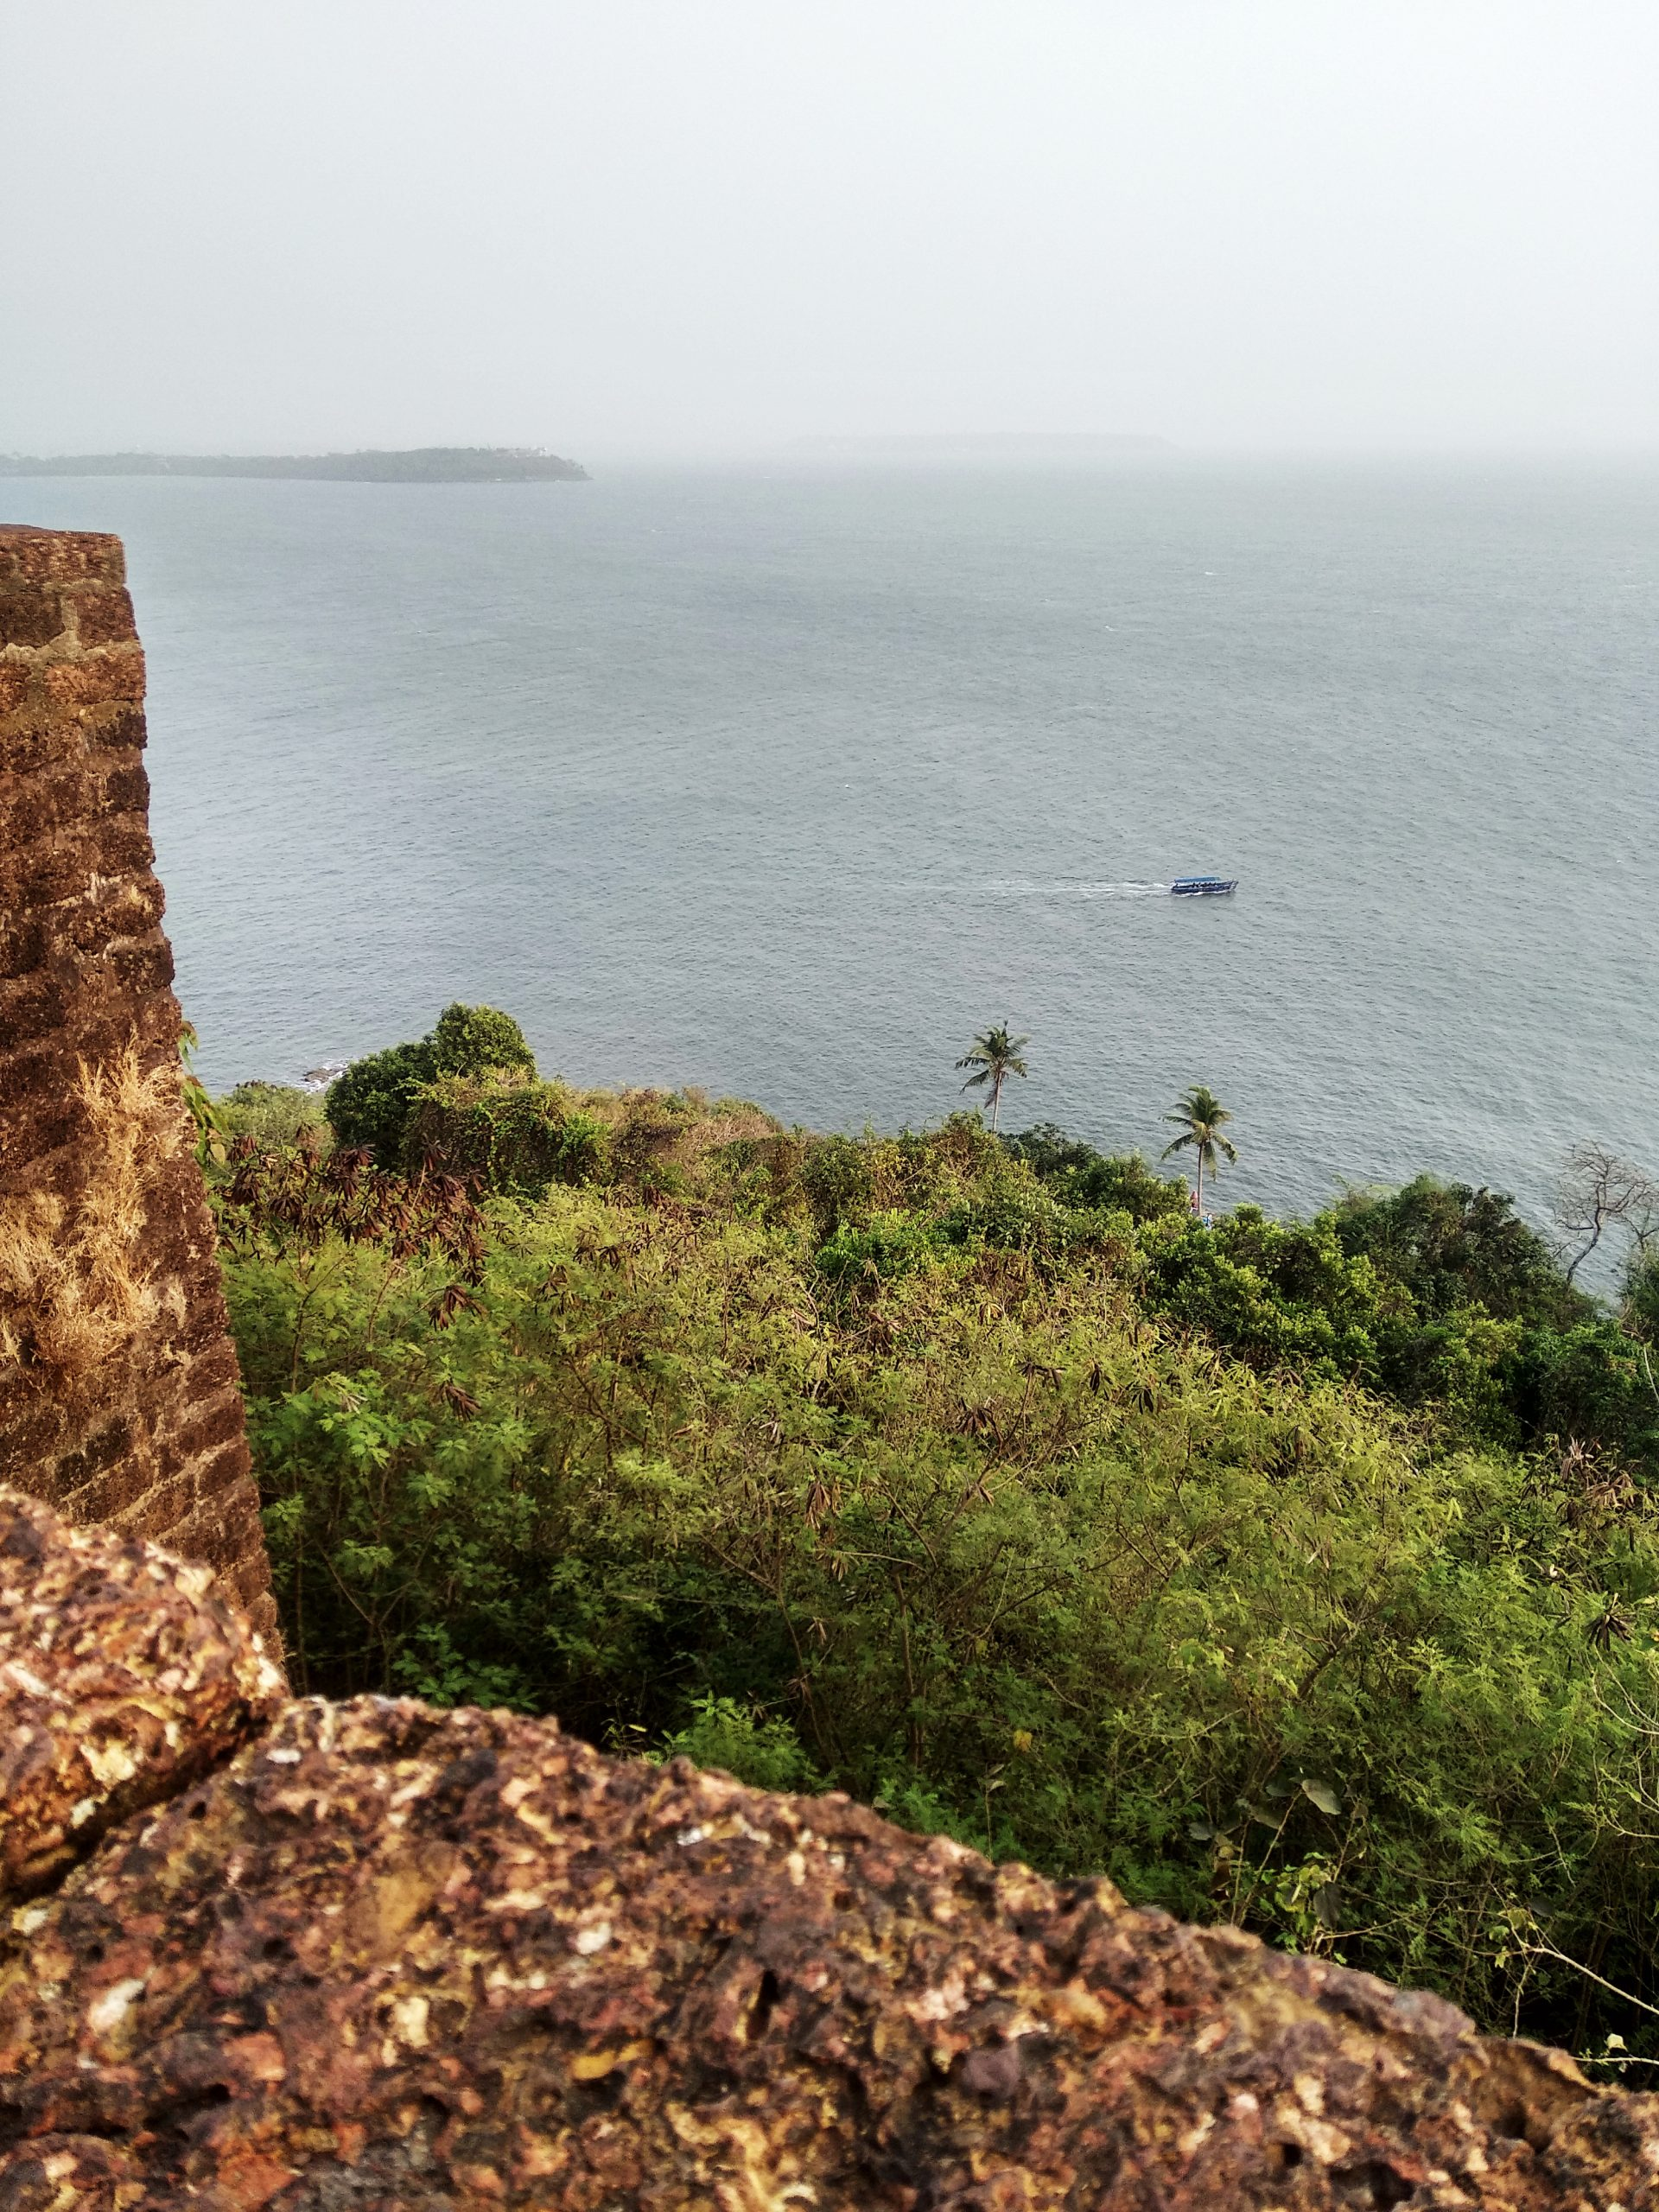 The Majestic Fort Aguada: The most indispensable strategic fort in the open waters of Konkan